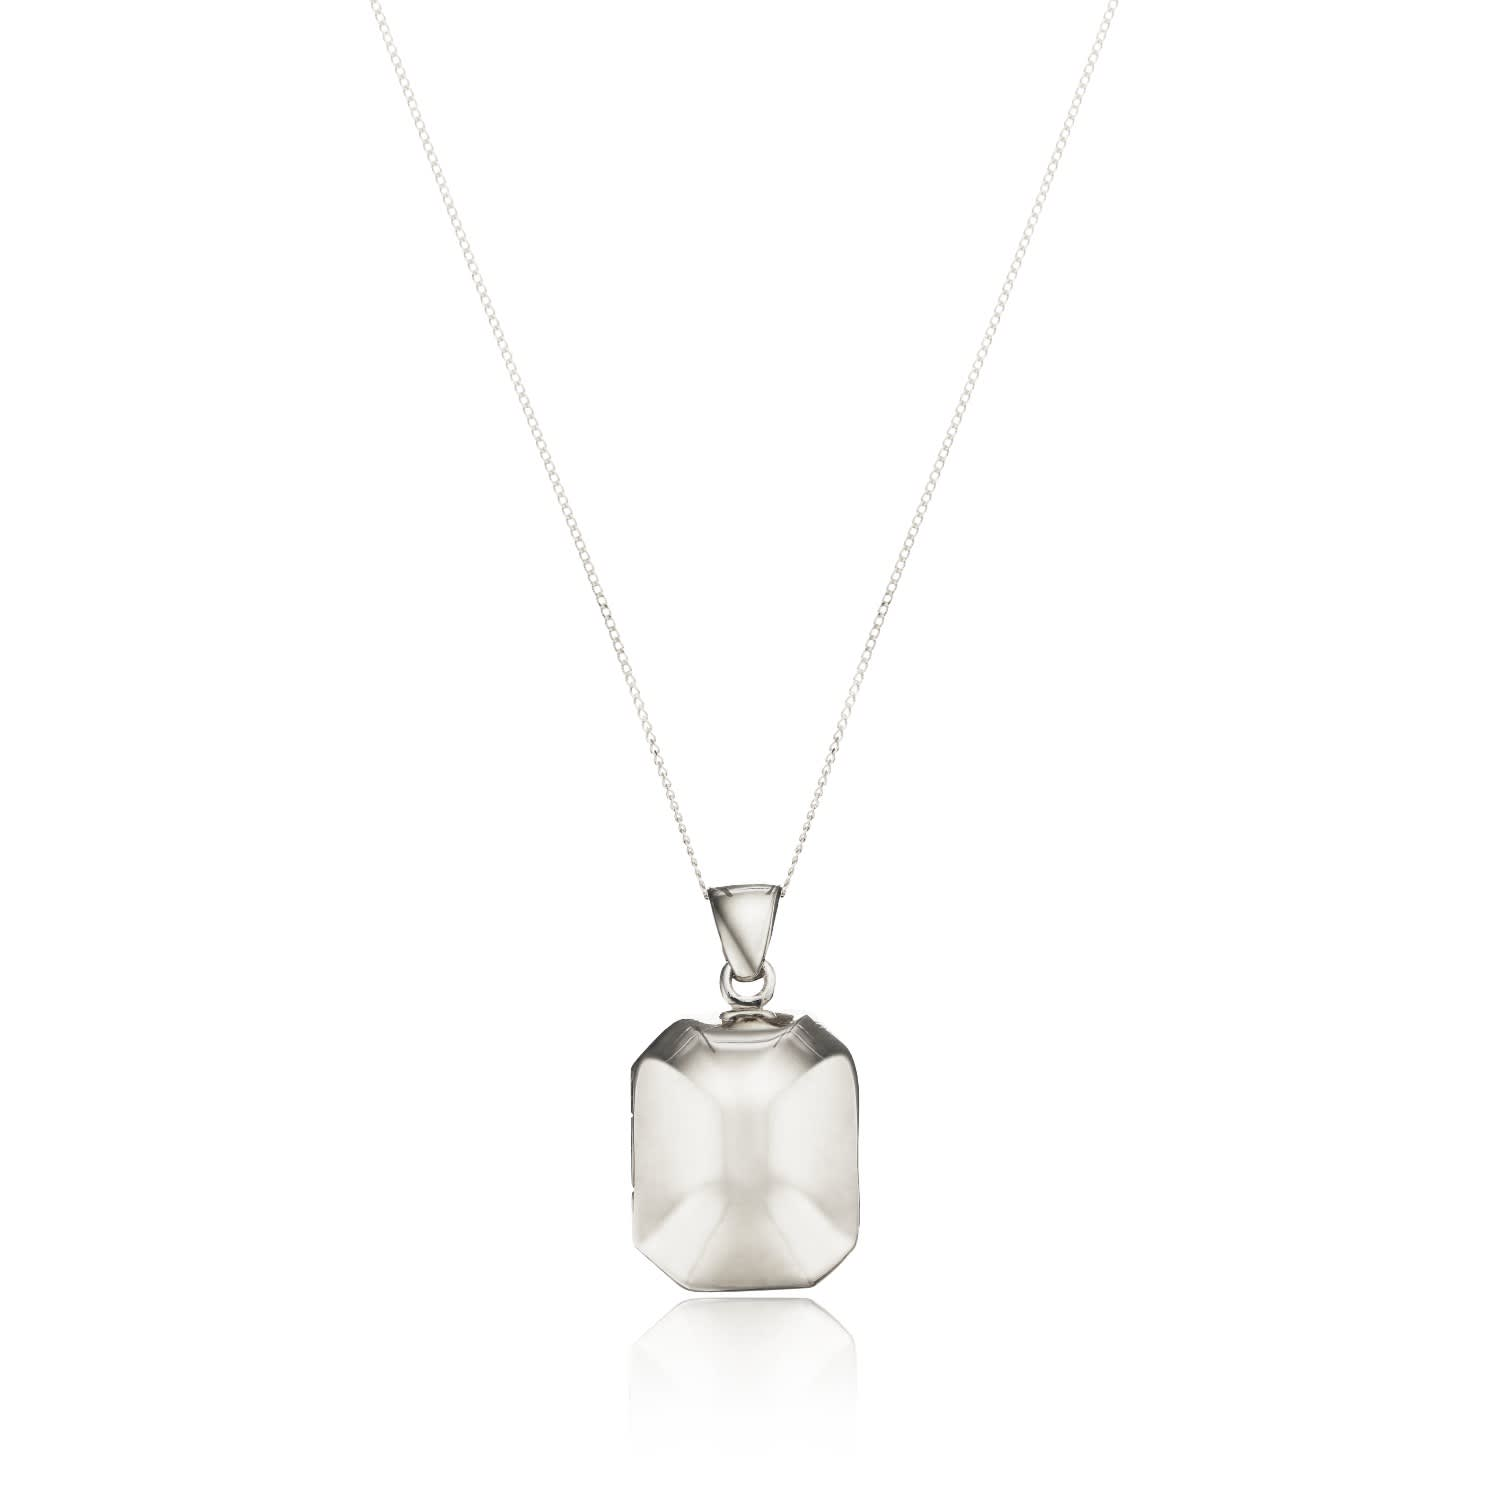 Lucy Medal Necklace FB Jewels 925 Sterling Silver 15mm Round St